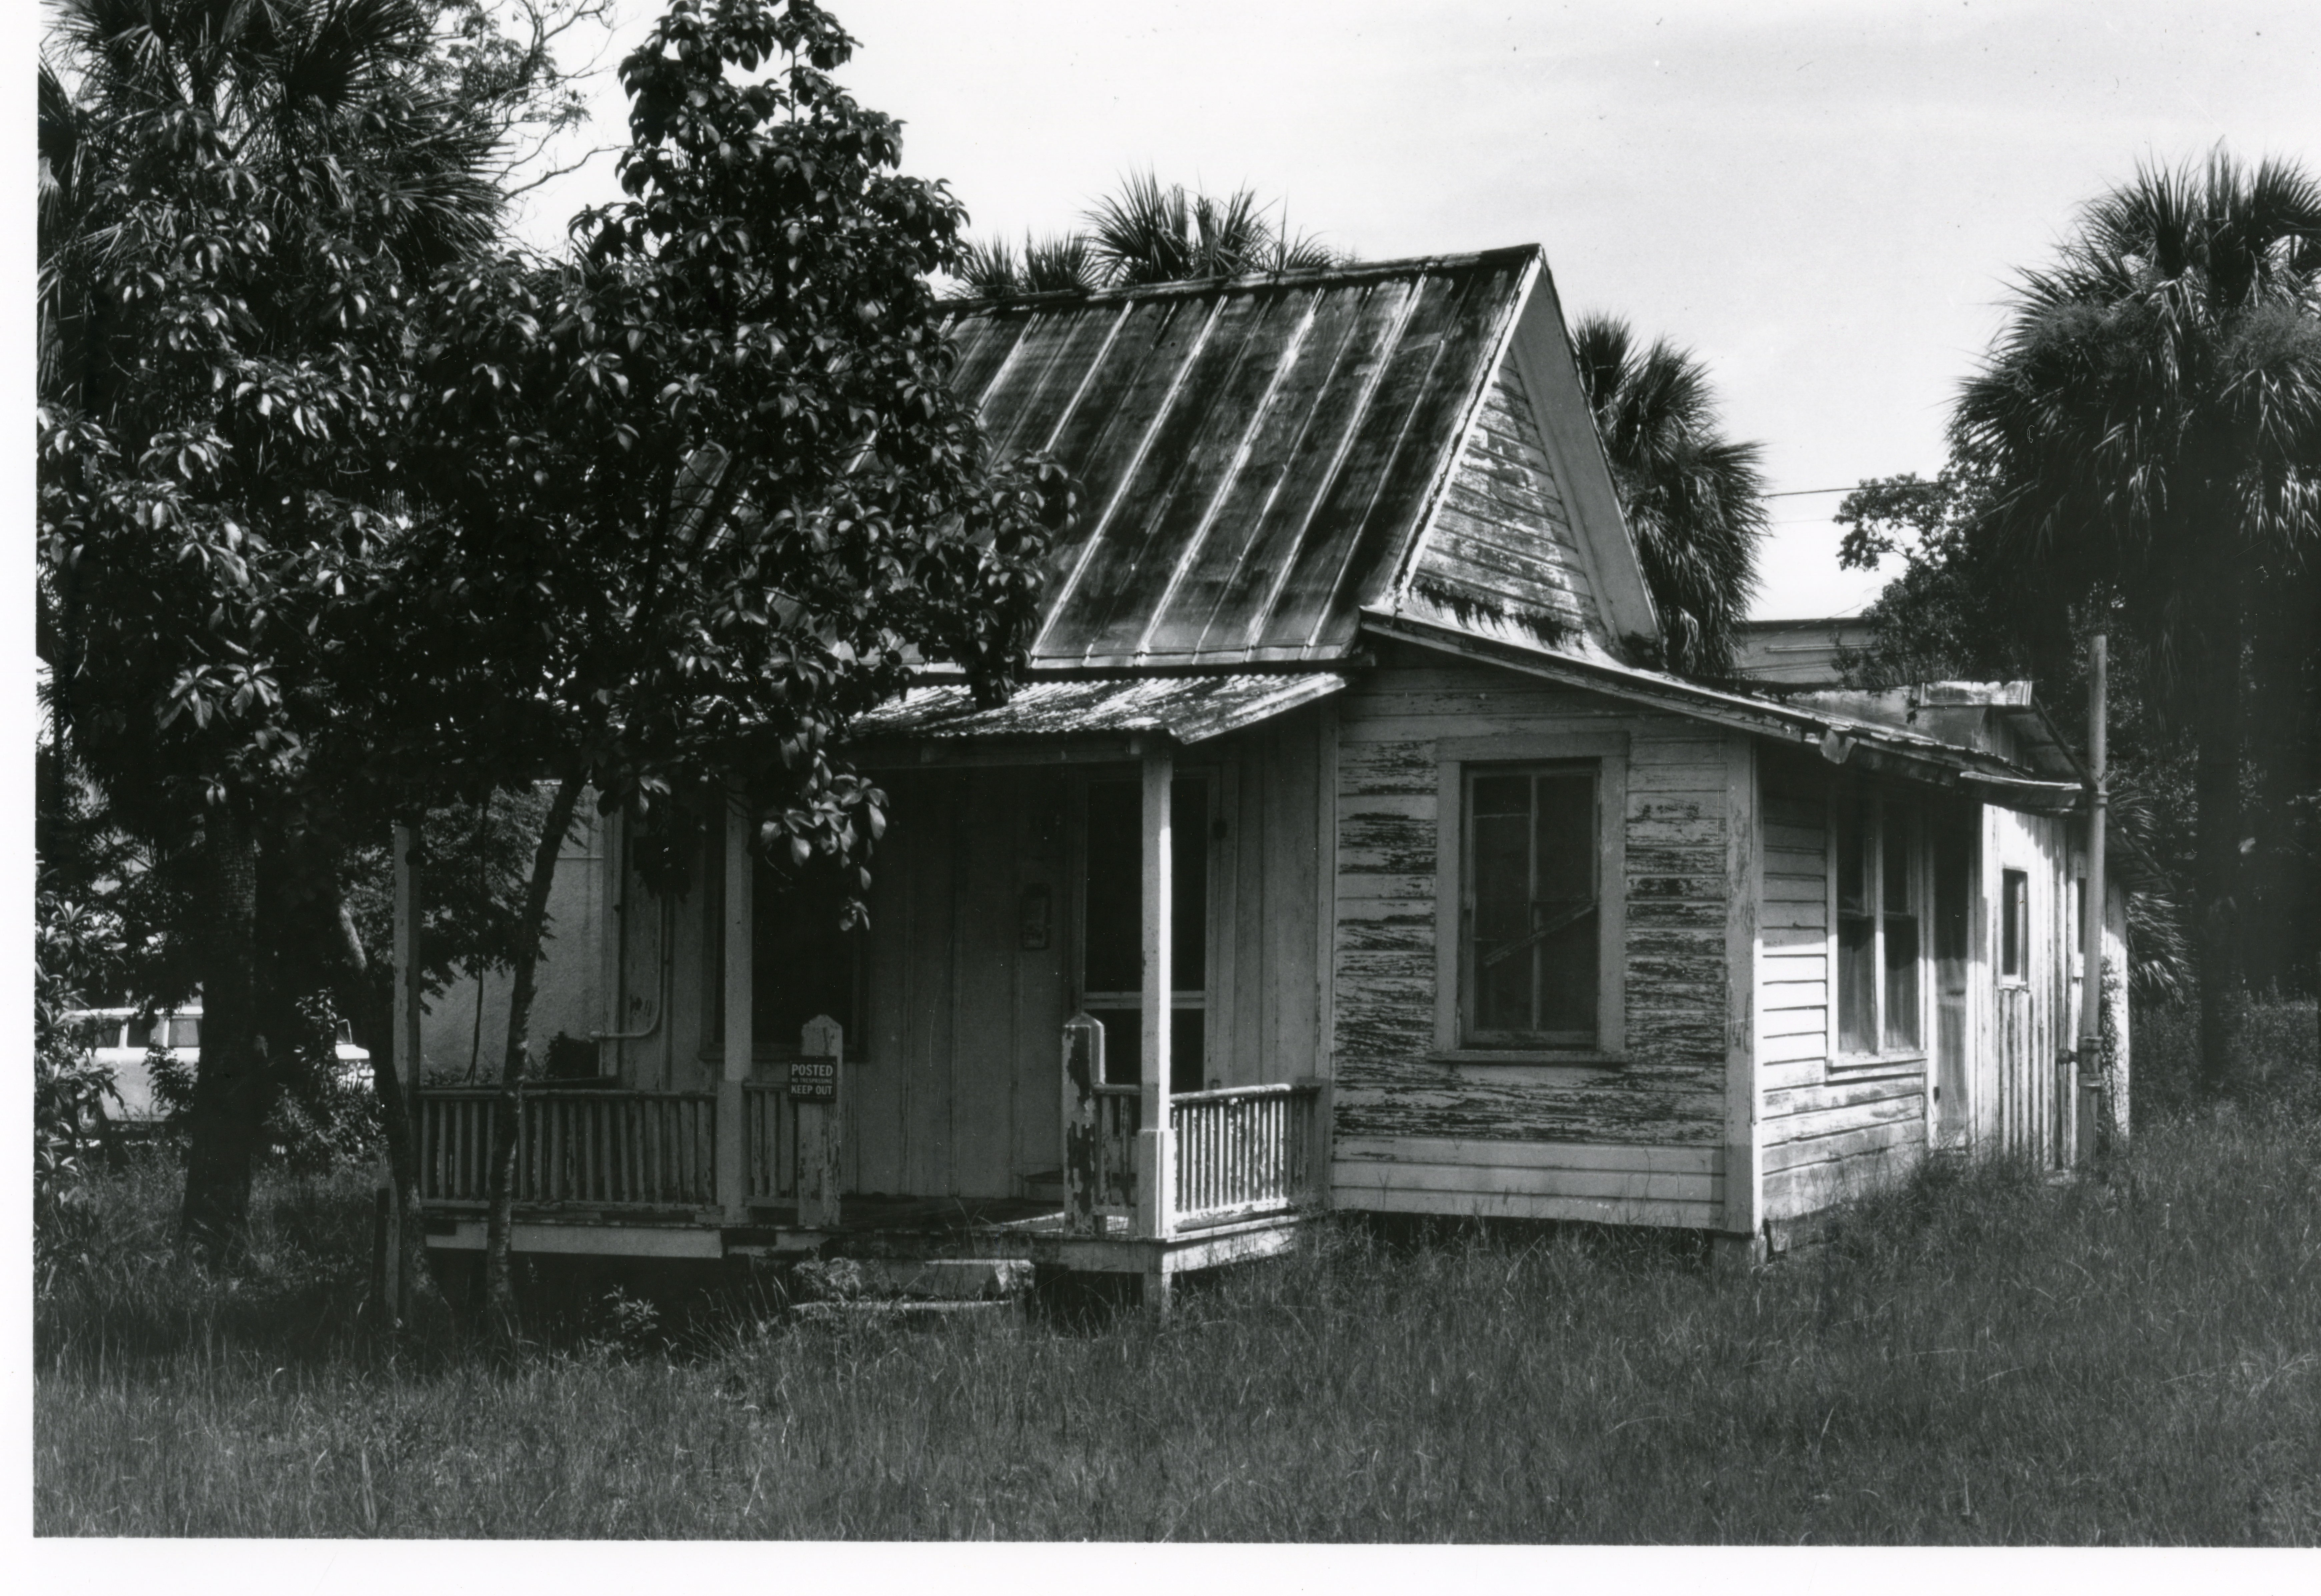 Greenwood House, Clearwater, Florida, circa 1950.